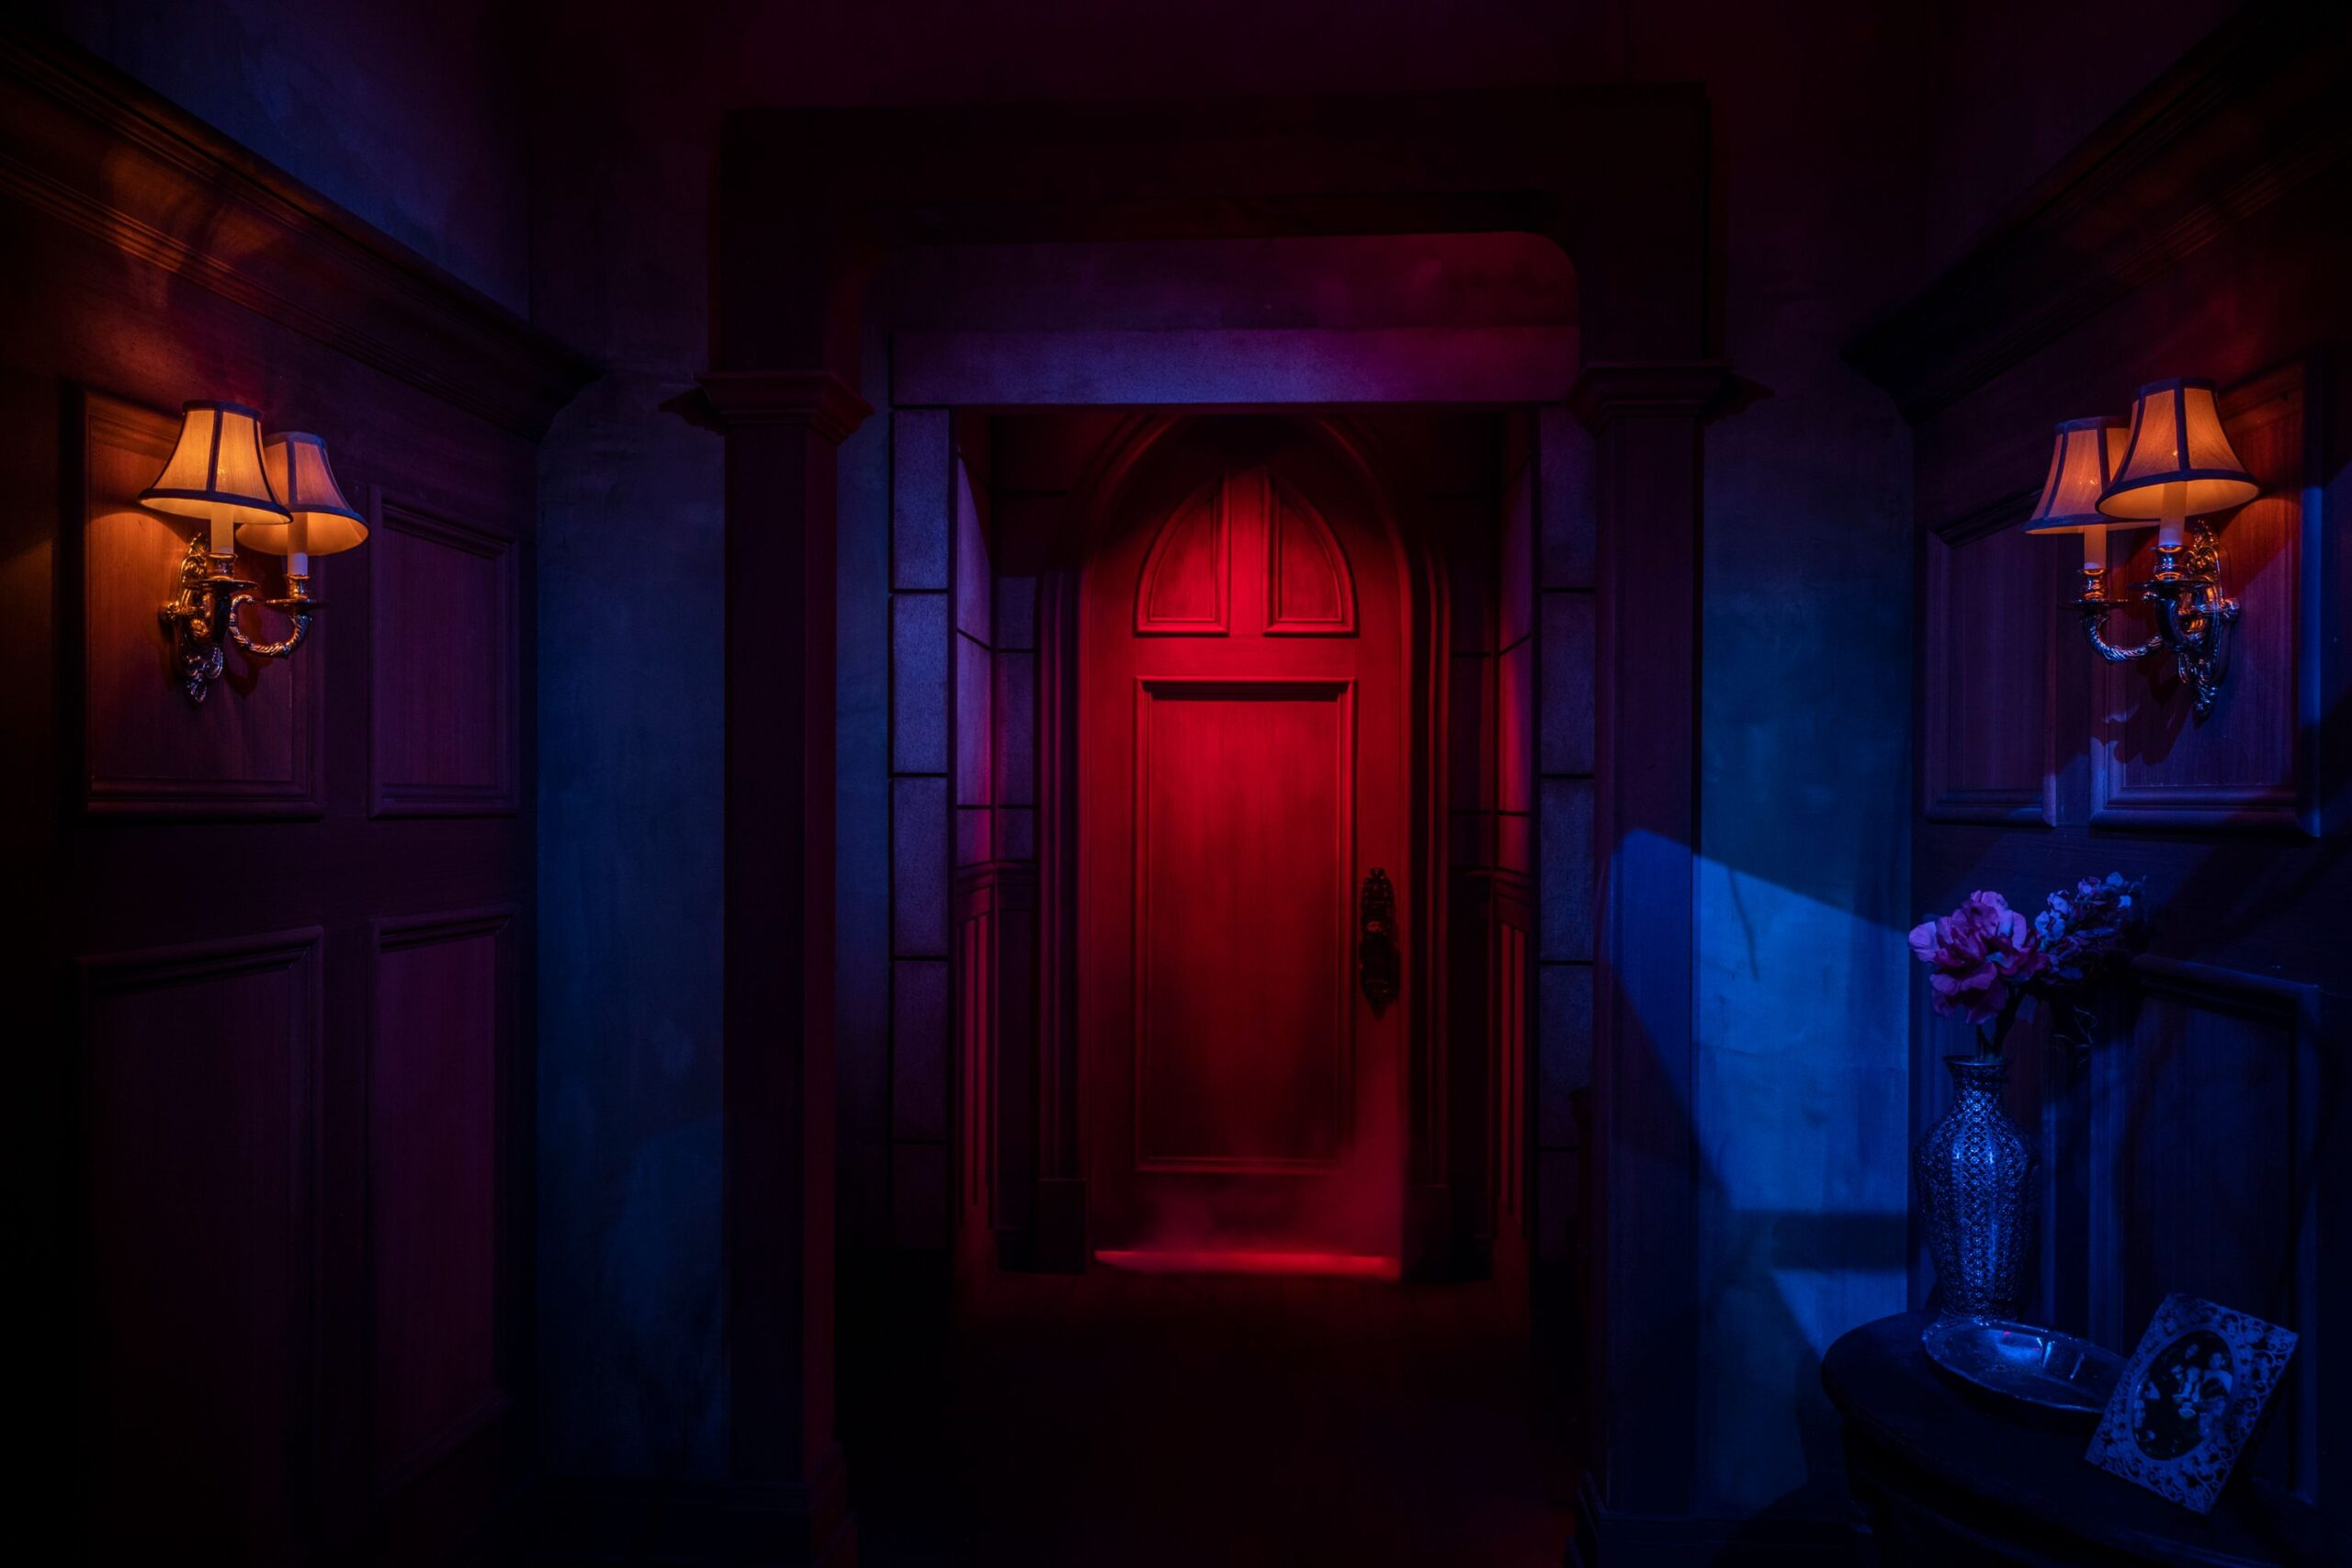 [News] THE HAUNTING OF HILL HOUSE Comes to Halloween Horror Nights